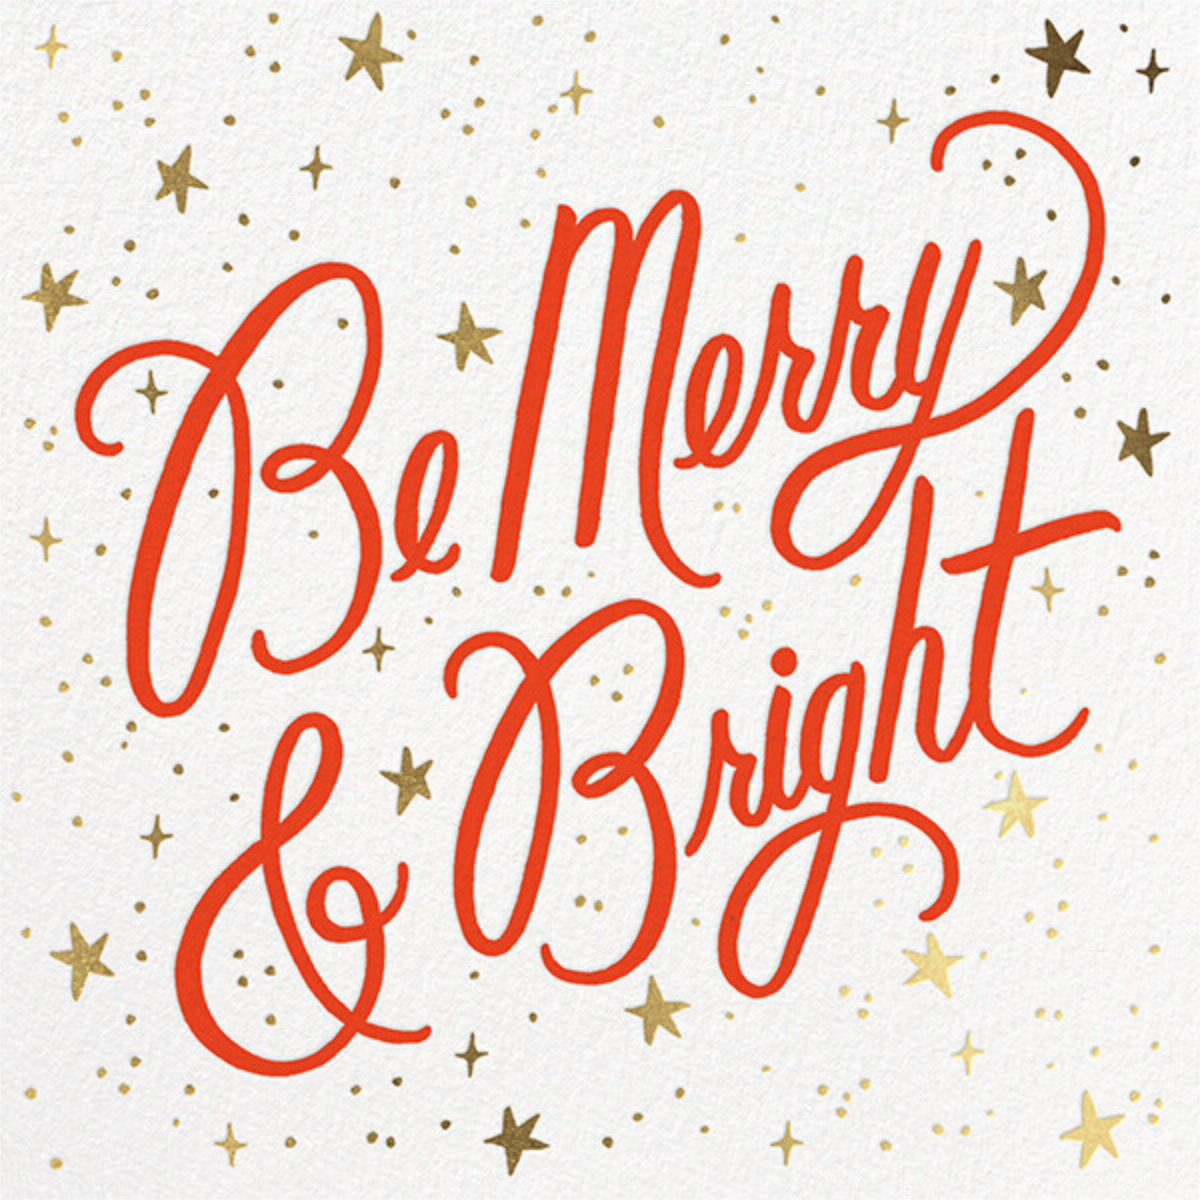 Merry and Bright Script - White - Rifle Paper Co. - Company holiday cards